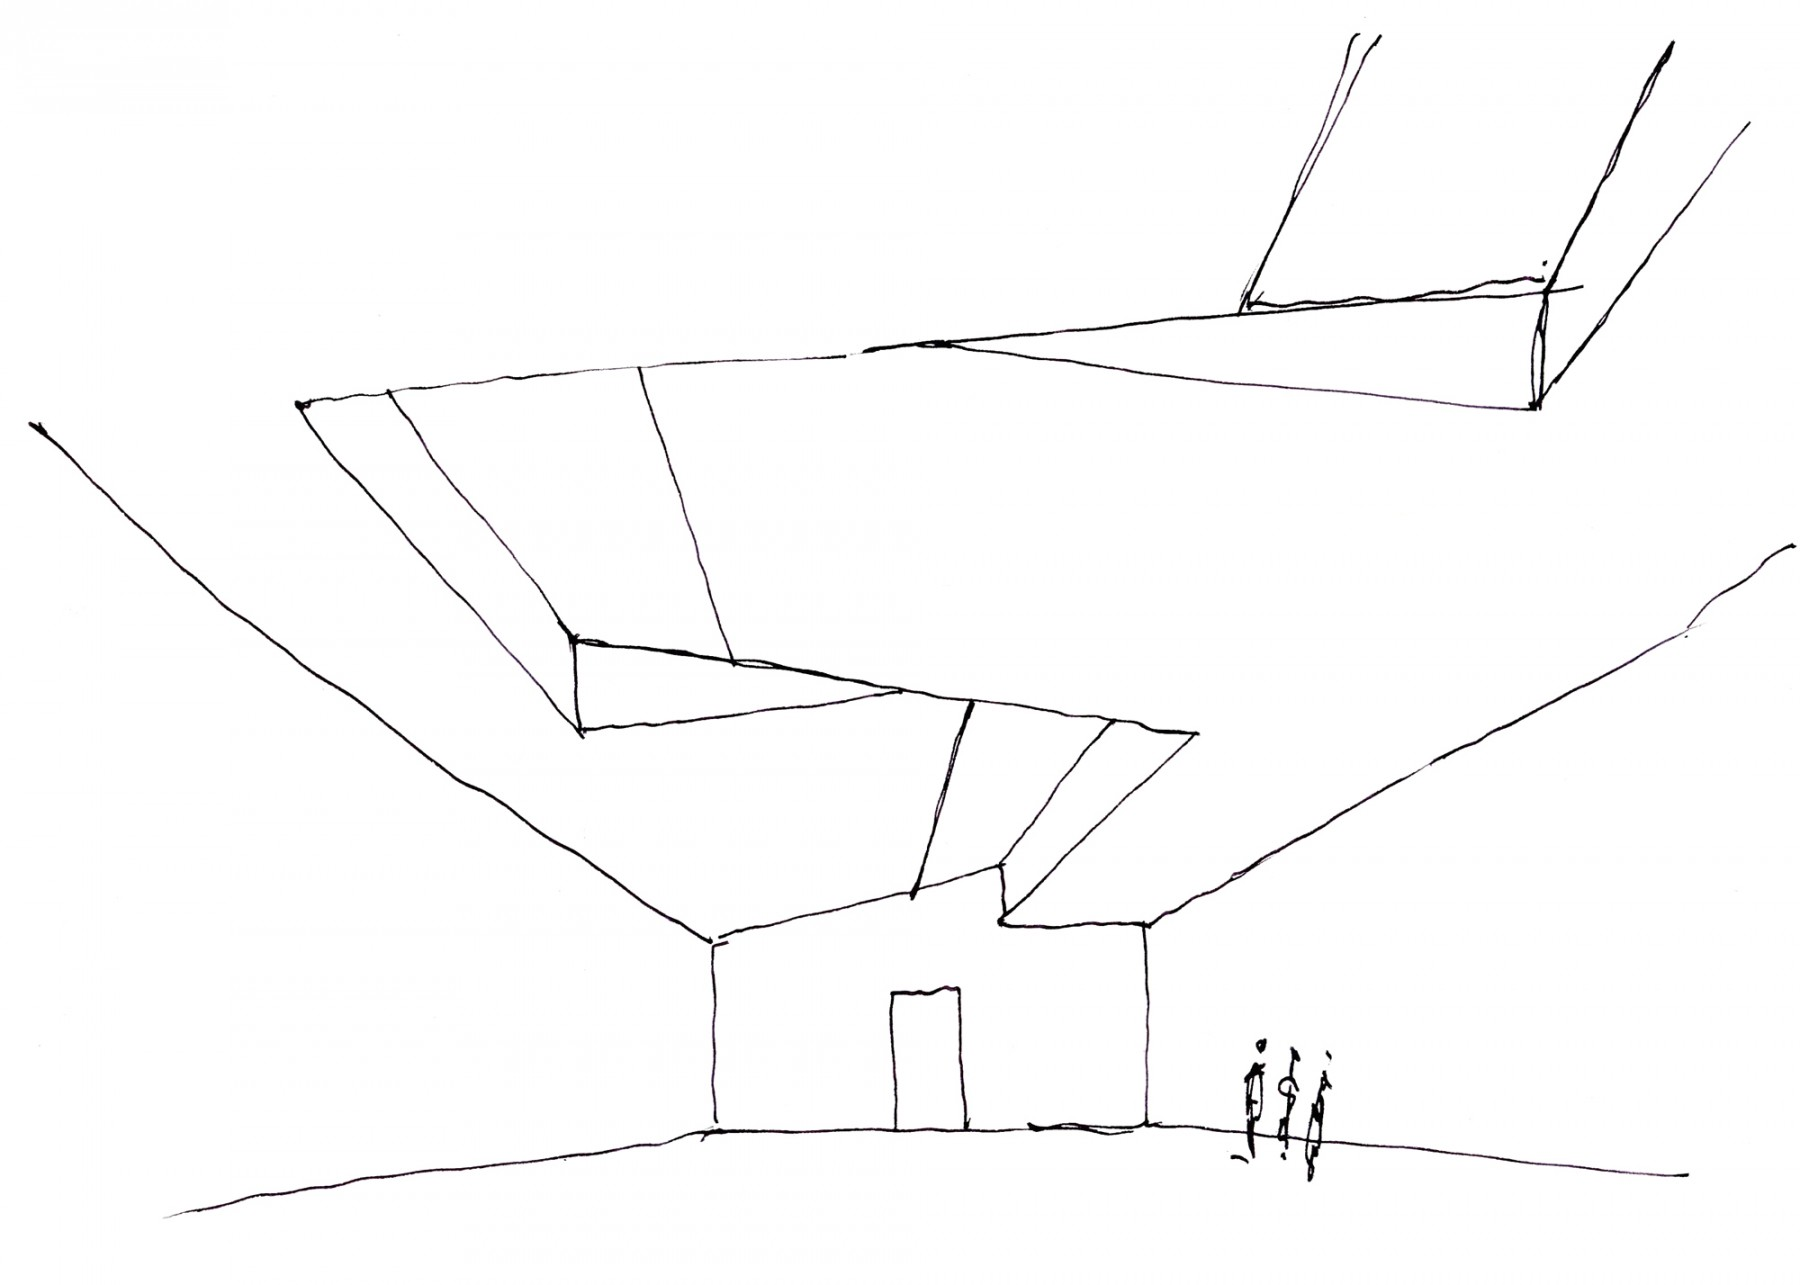 The-Garage-CCC-Moscow-Russia-Art-gallery-centre-contemporary-culture-modern-Daria-Zhukova-Jamie-Fobert-Architects-exhibition-sketch